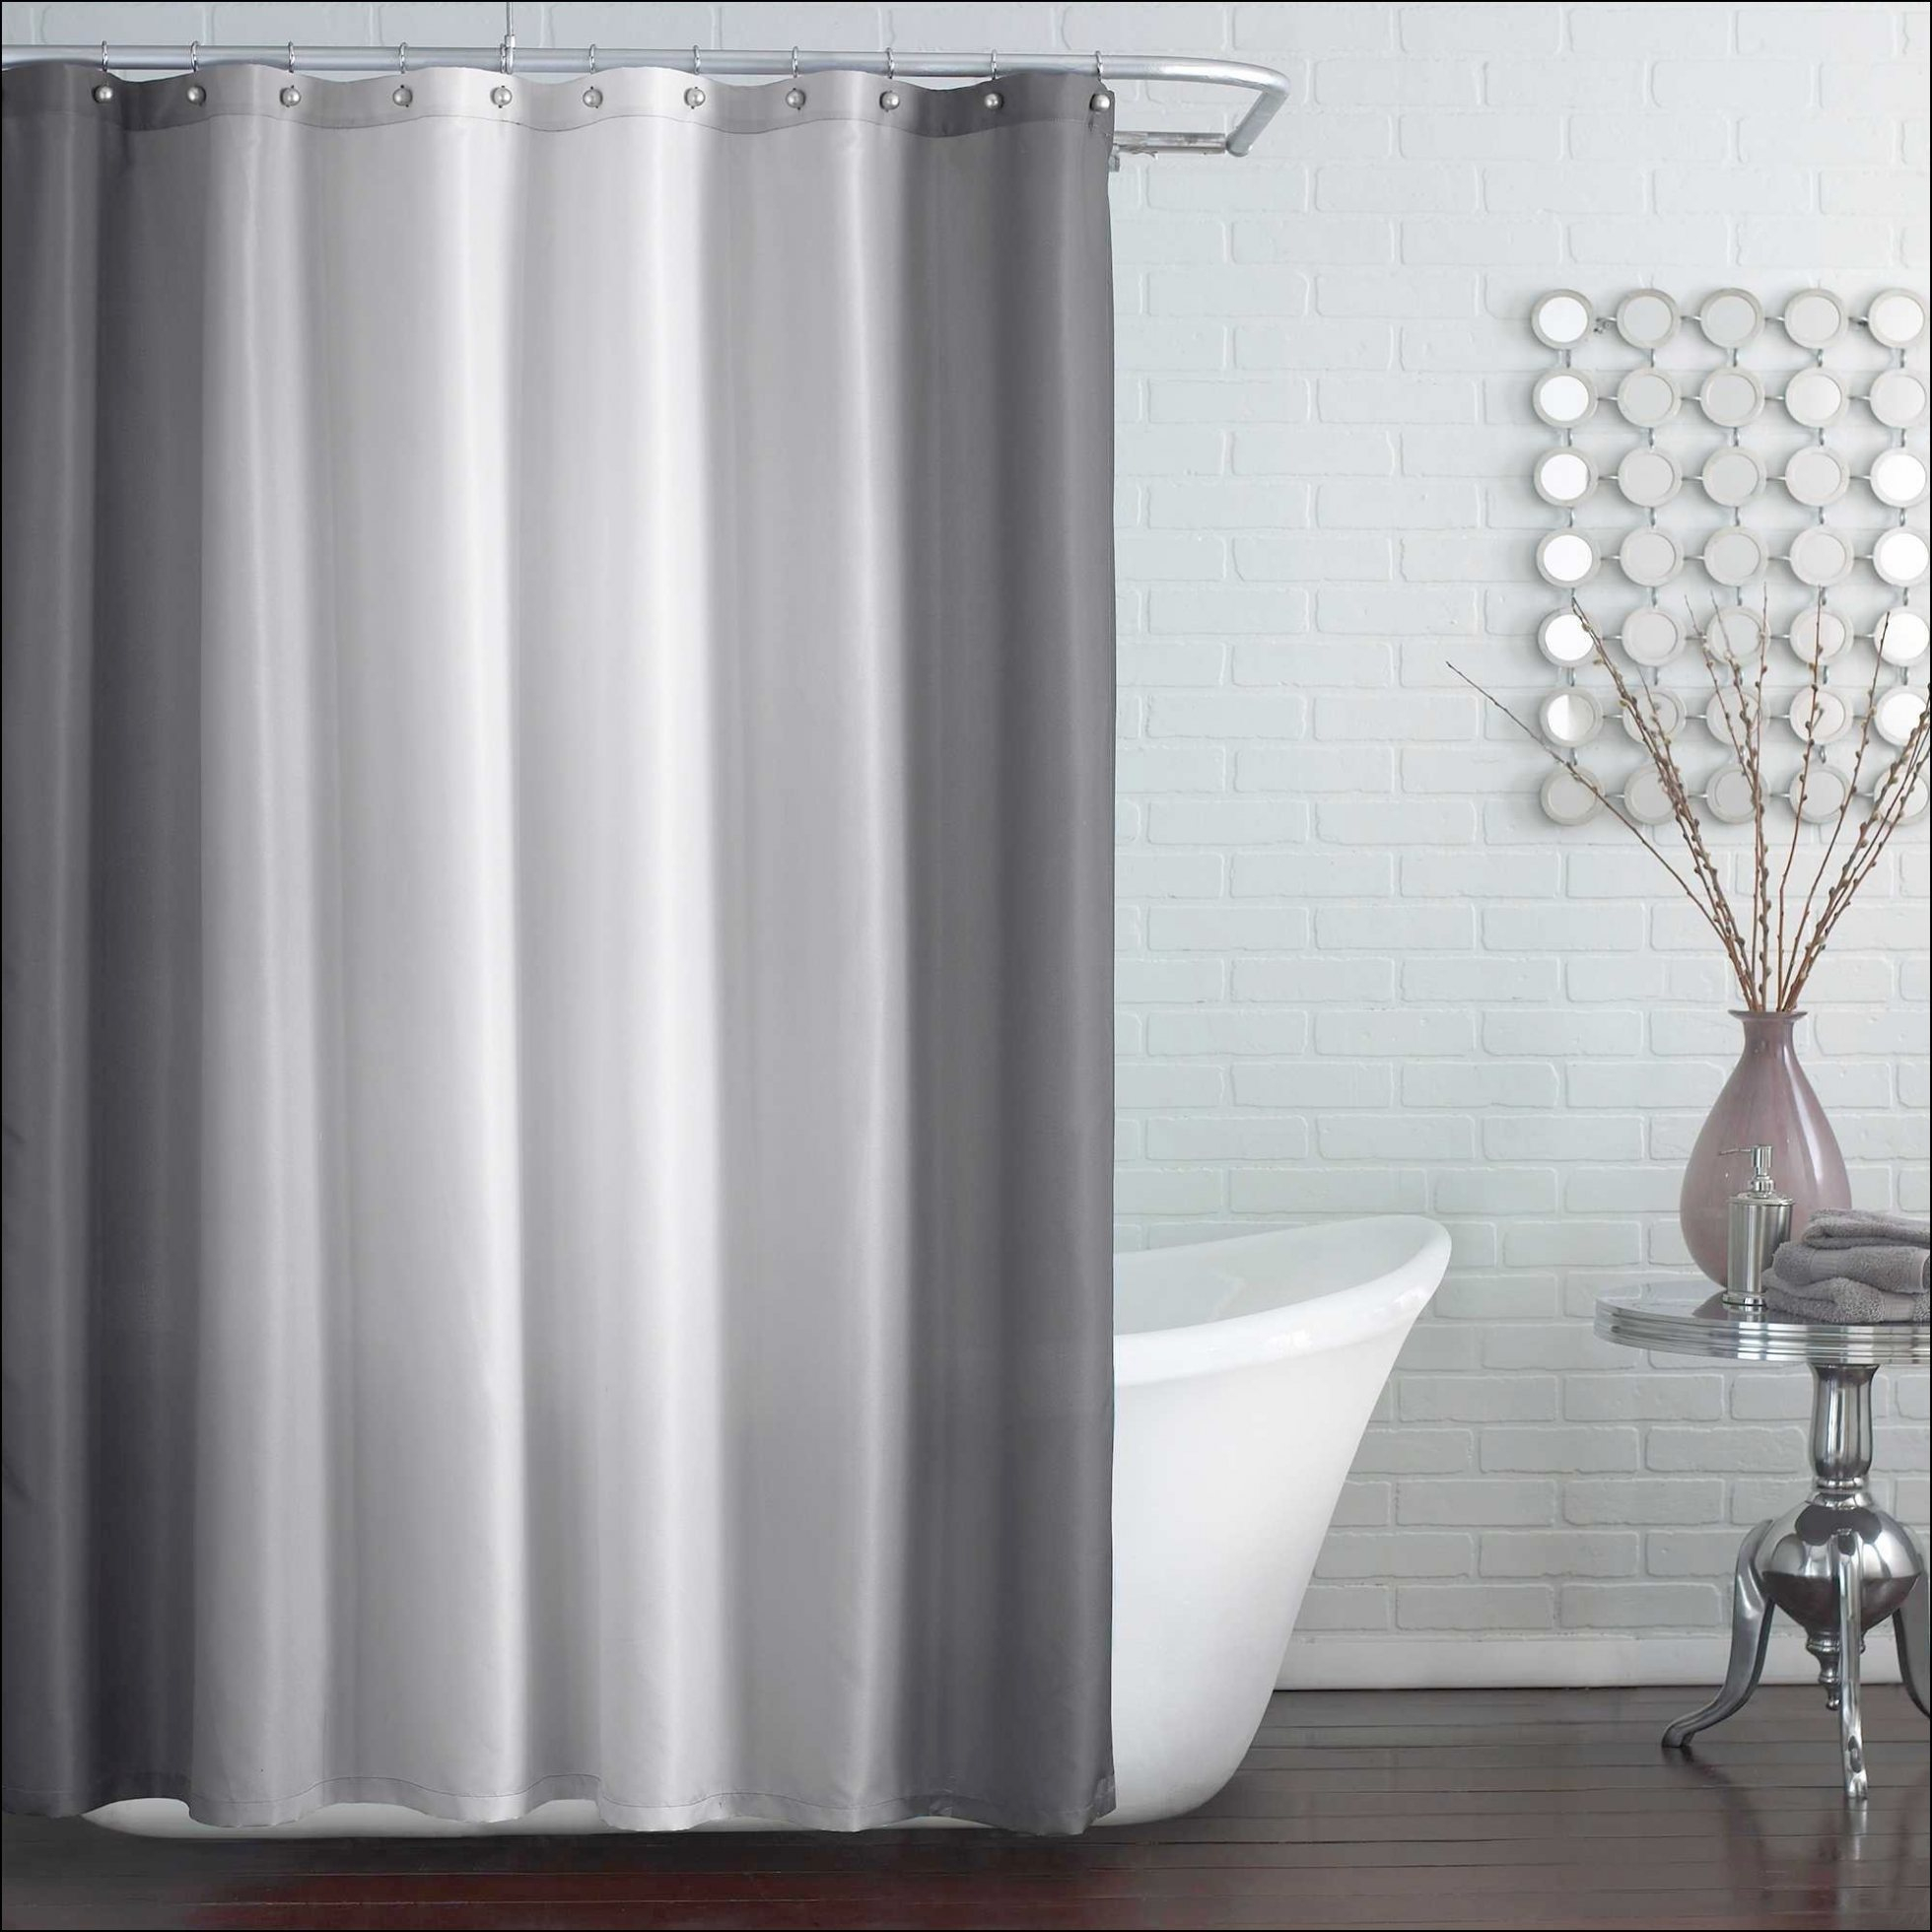 78 Shower Curtain Liner 7 Great Stall Shower Curtains 54 X 78 throughout measurements 1960 X 1960